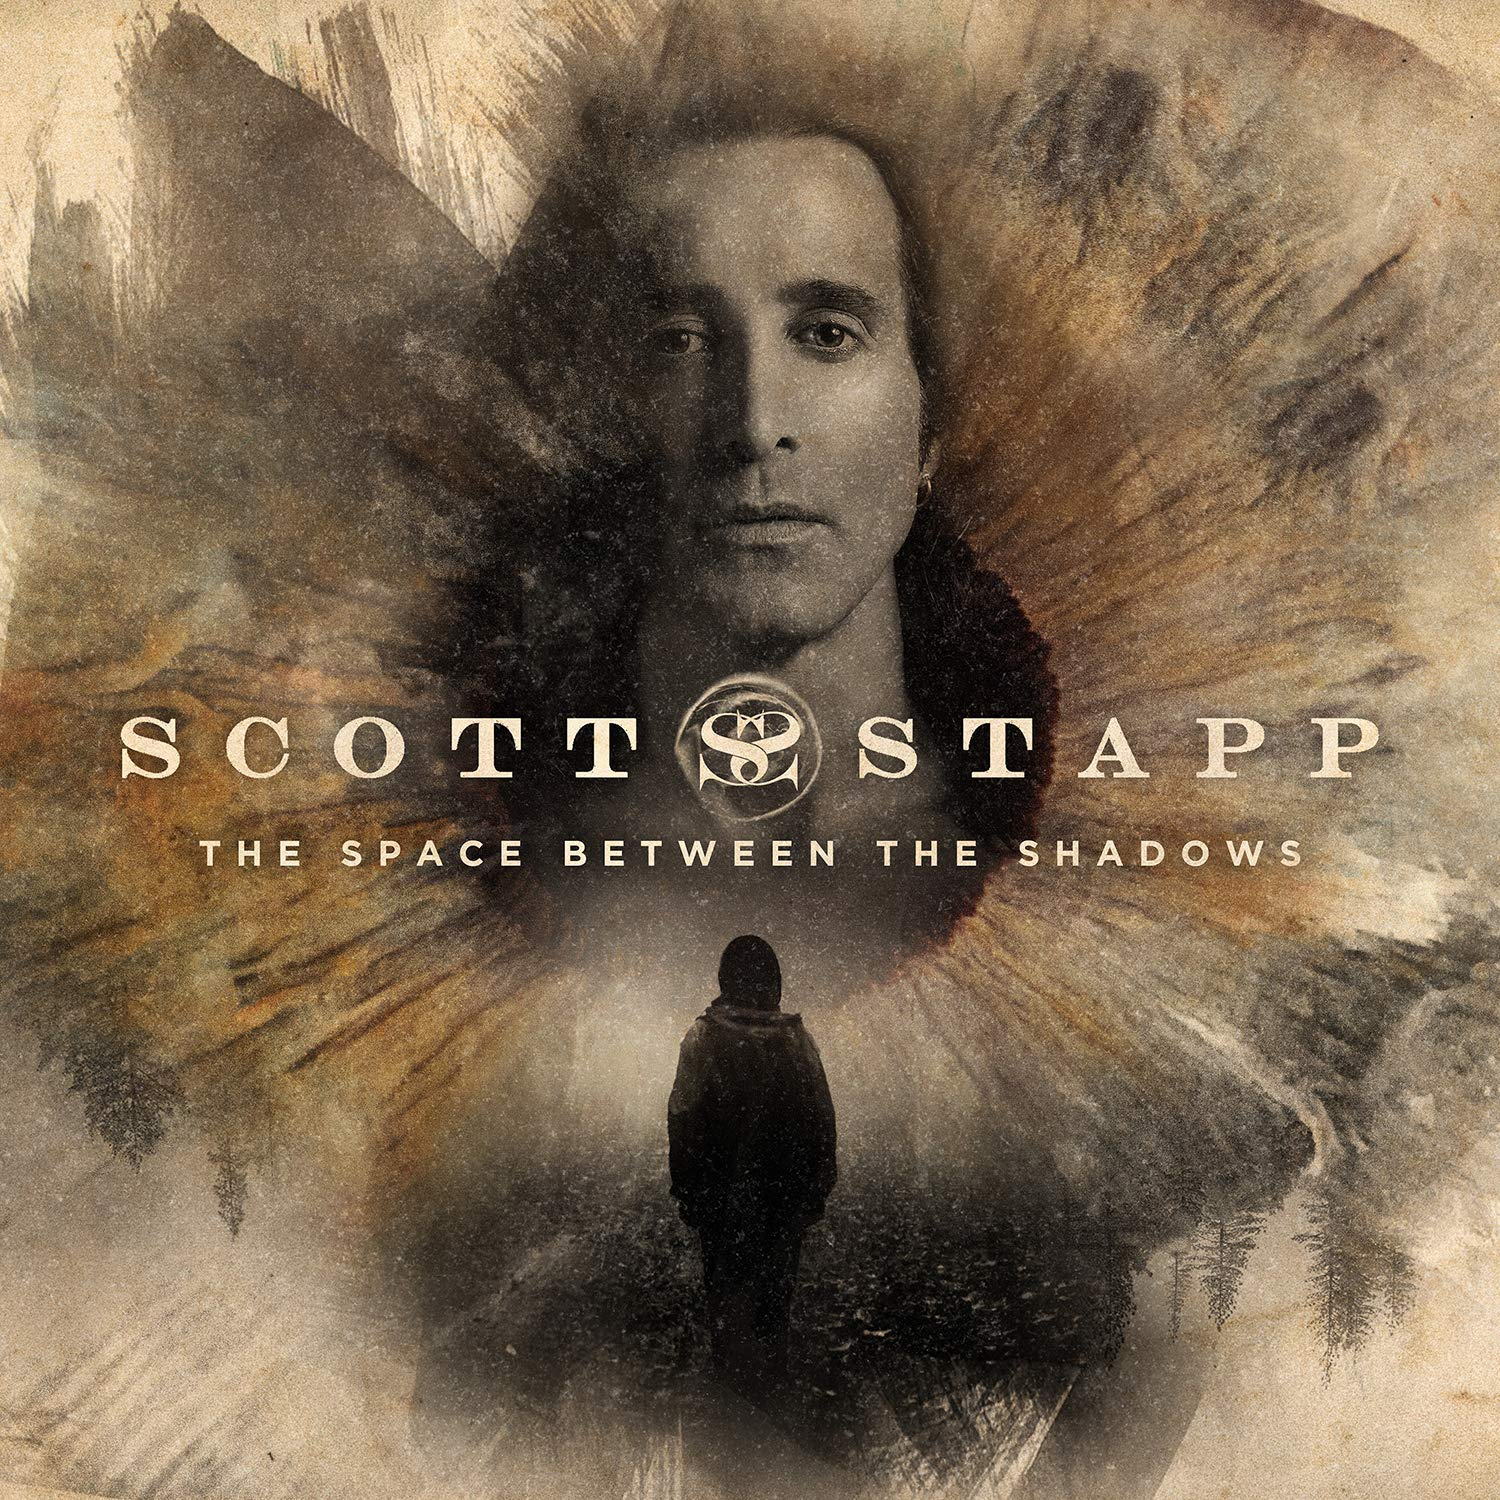 Scott Stapp - The Space Between The Shadows [LP]